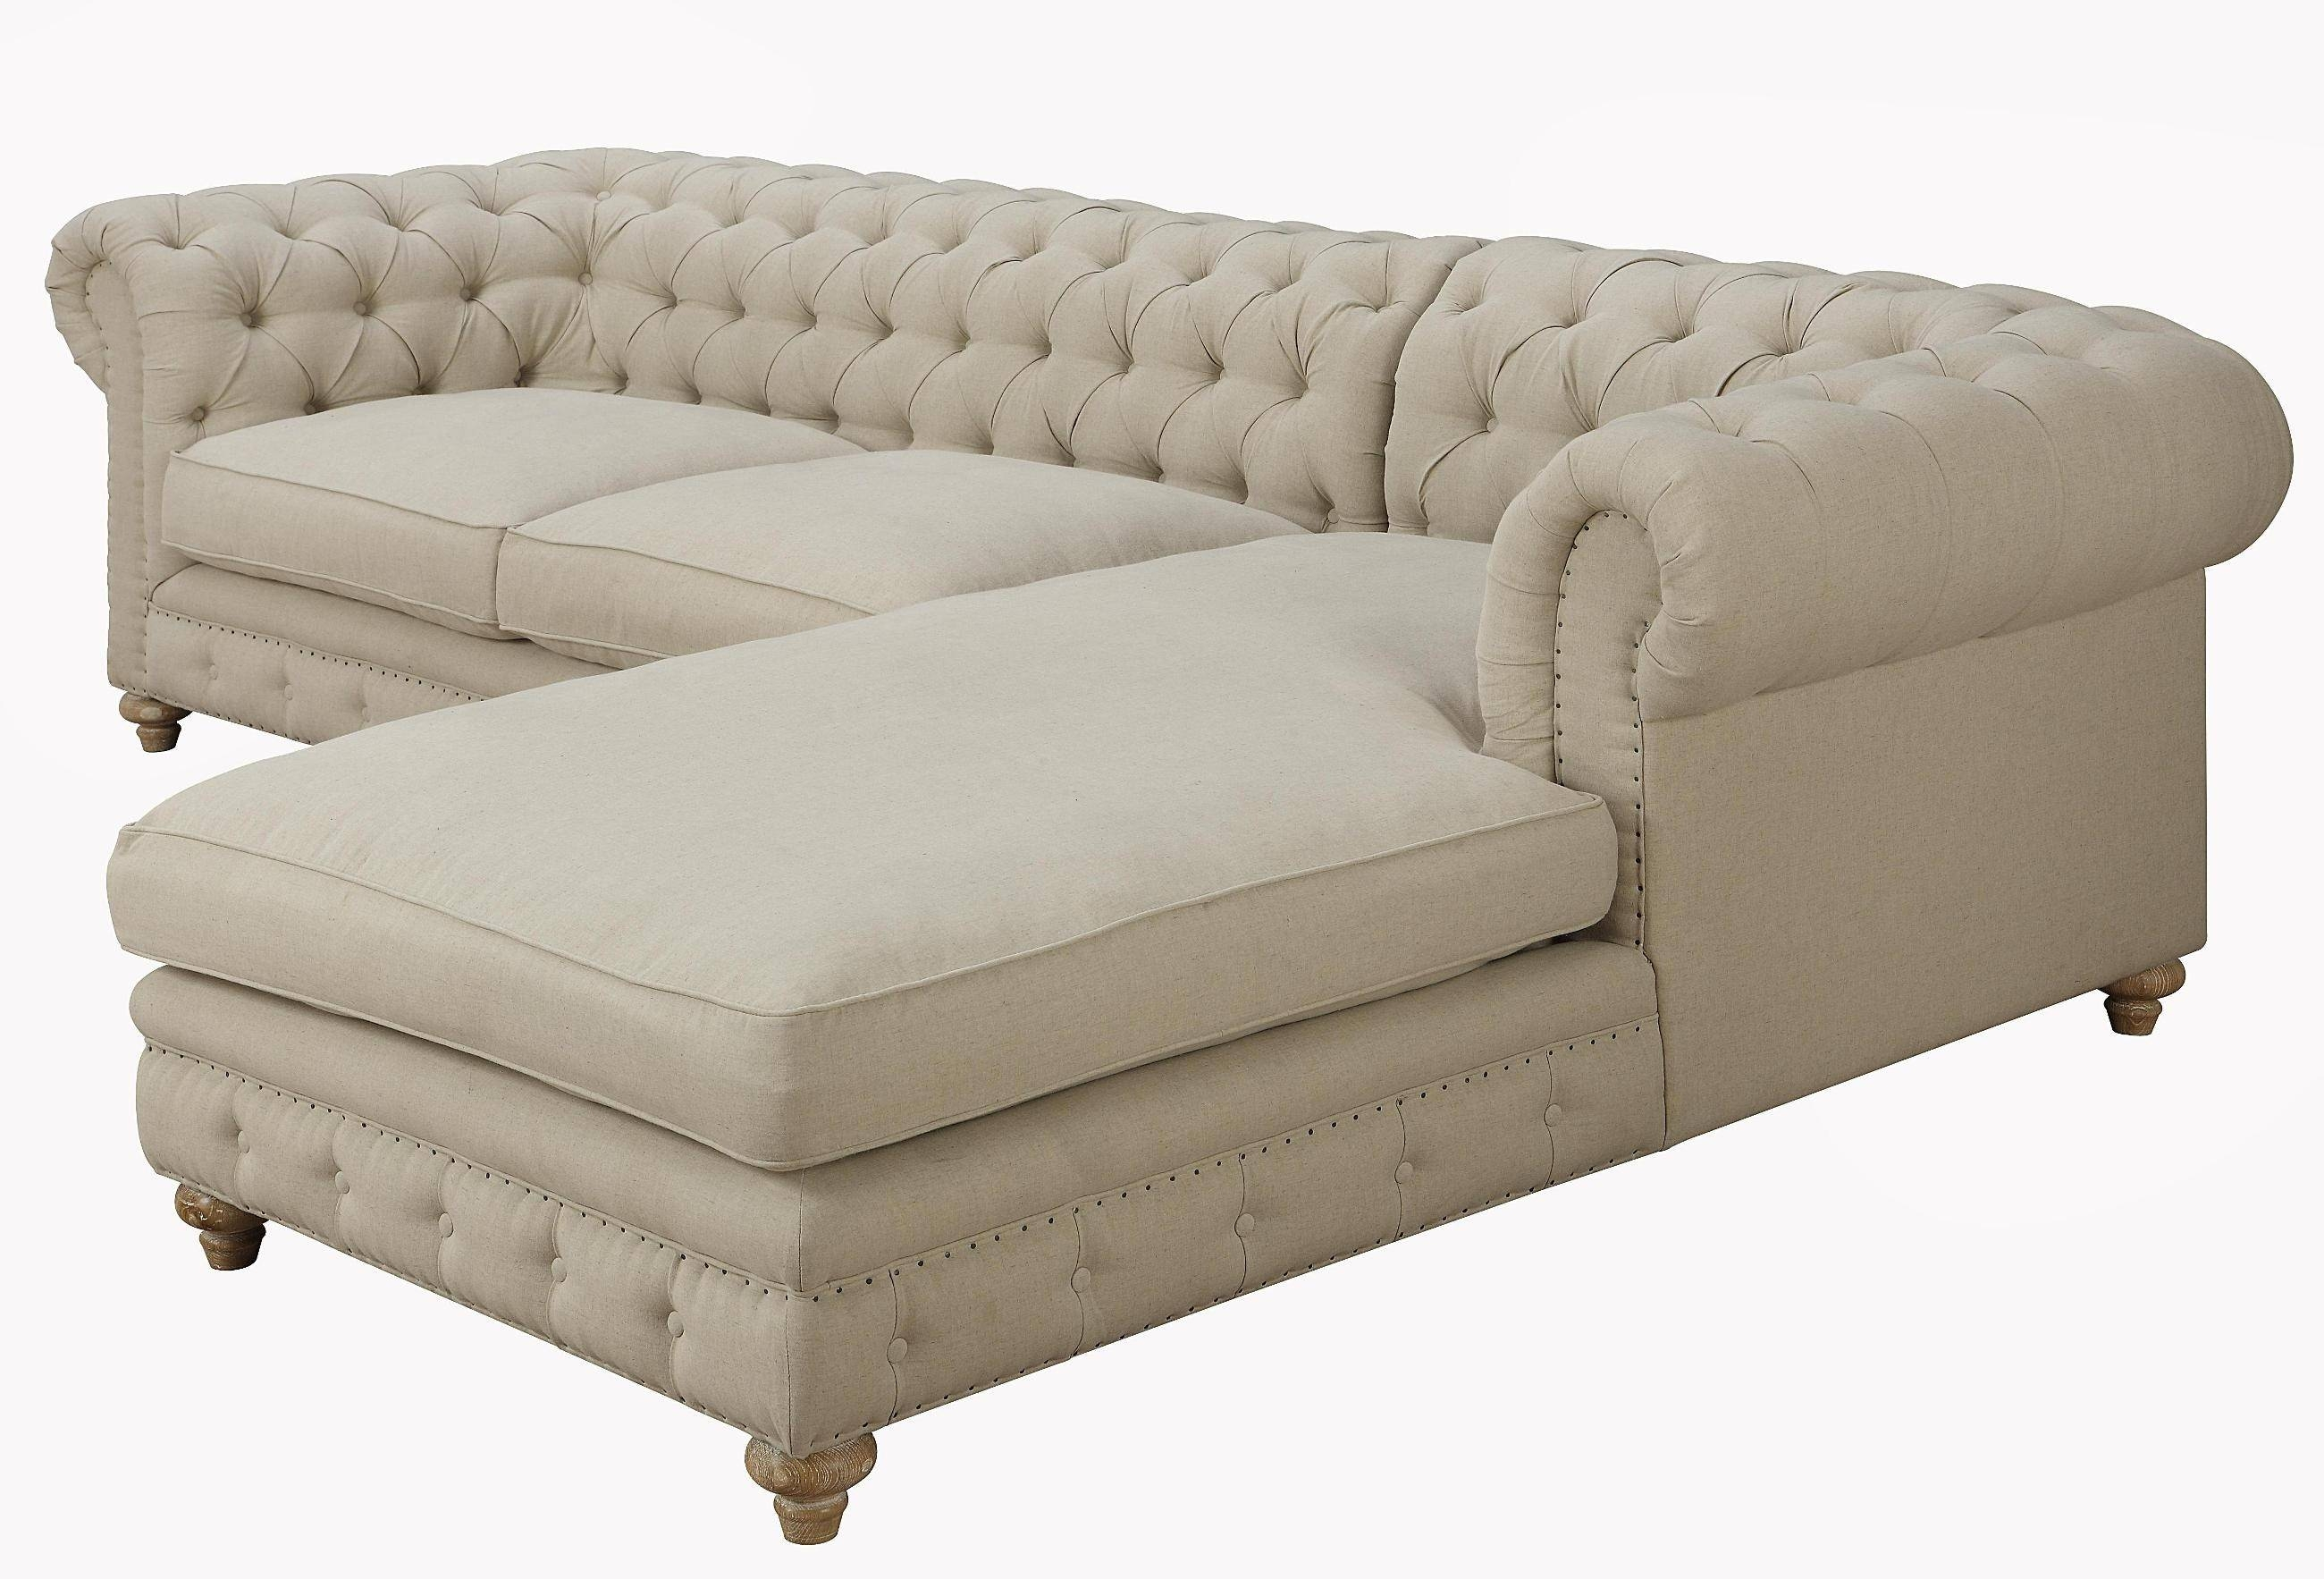 Sectional Sofas Houston Tx. Colorado Sectionalrobert Michaels with regard to Tufted Sectional Sofa Chaise (Image 7 of 25)